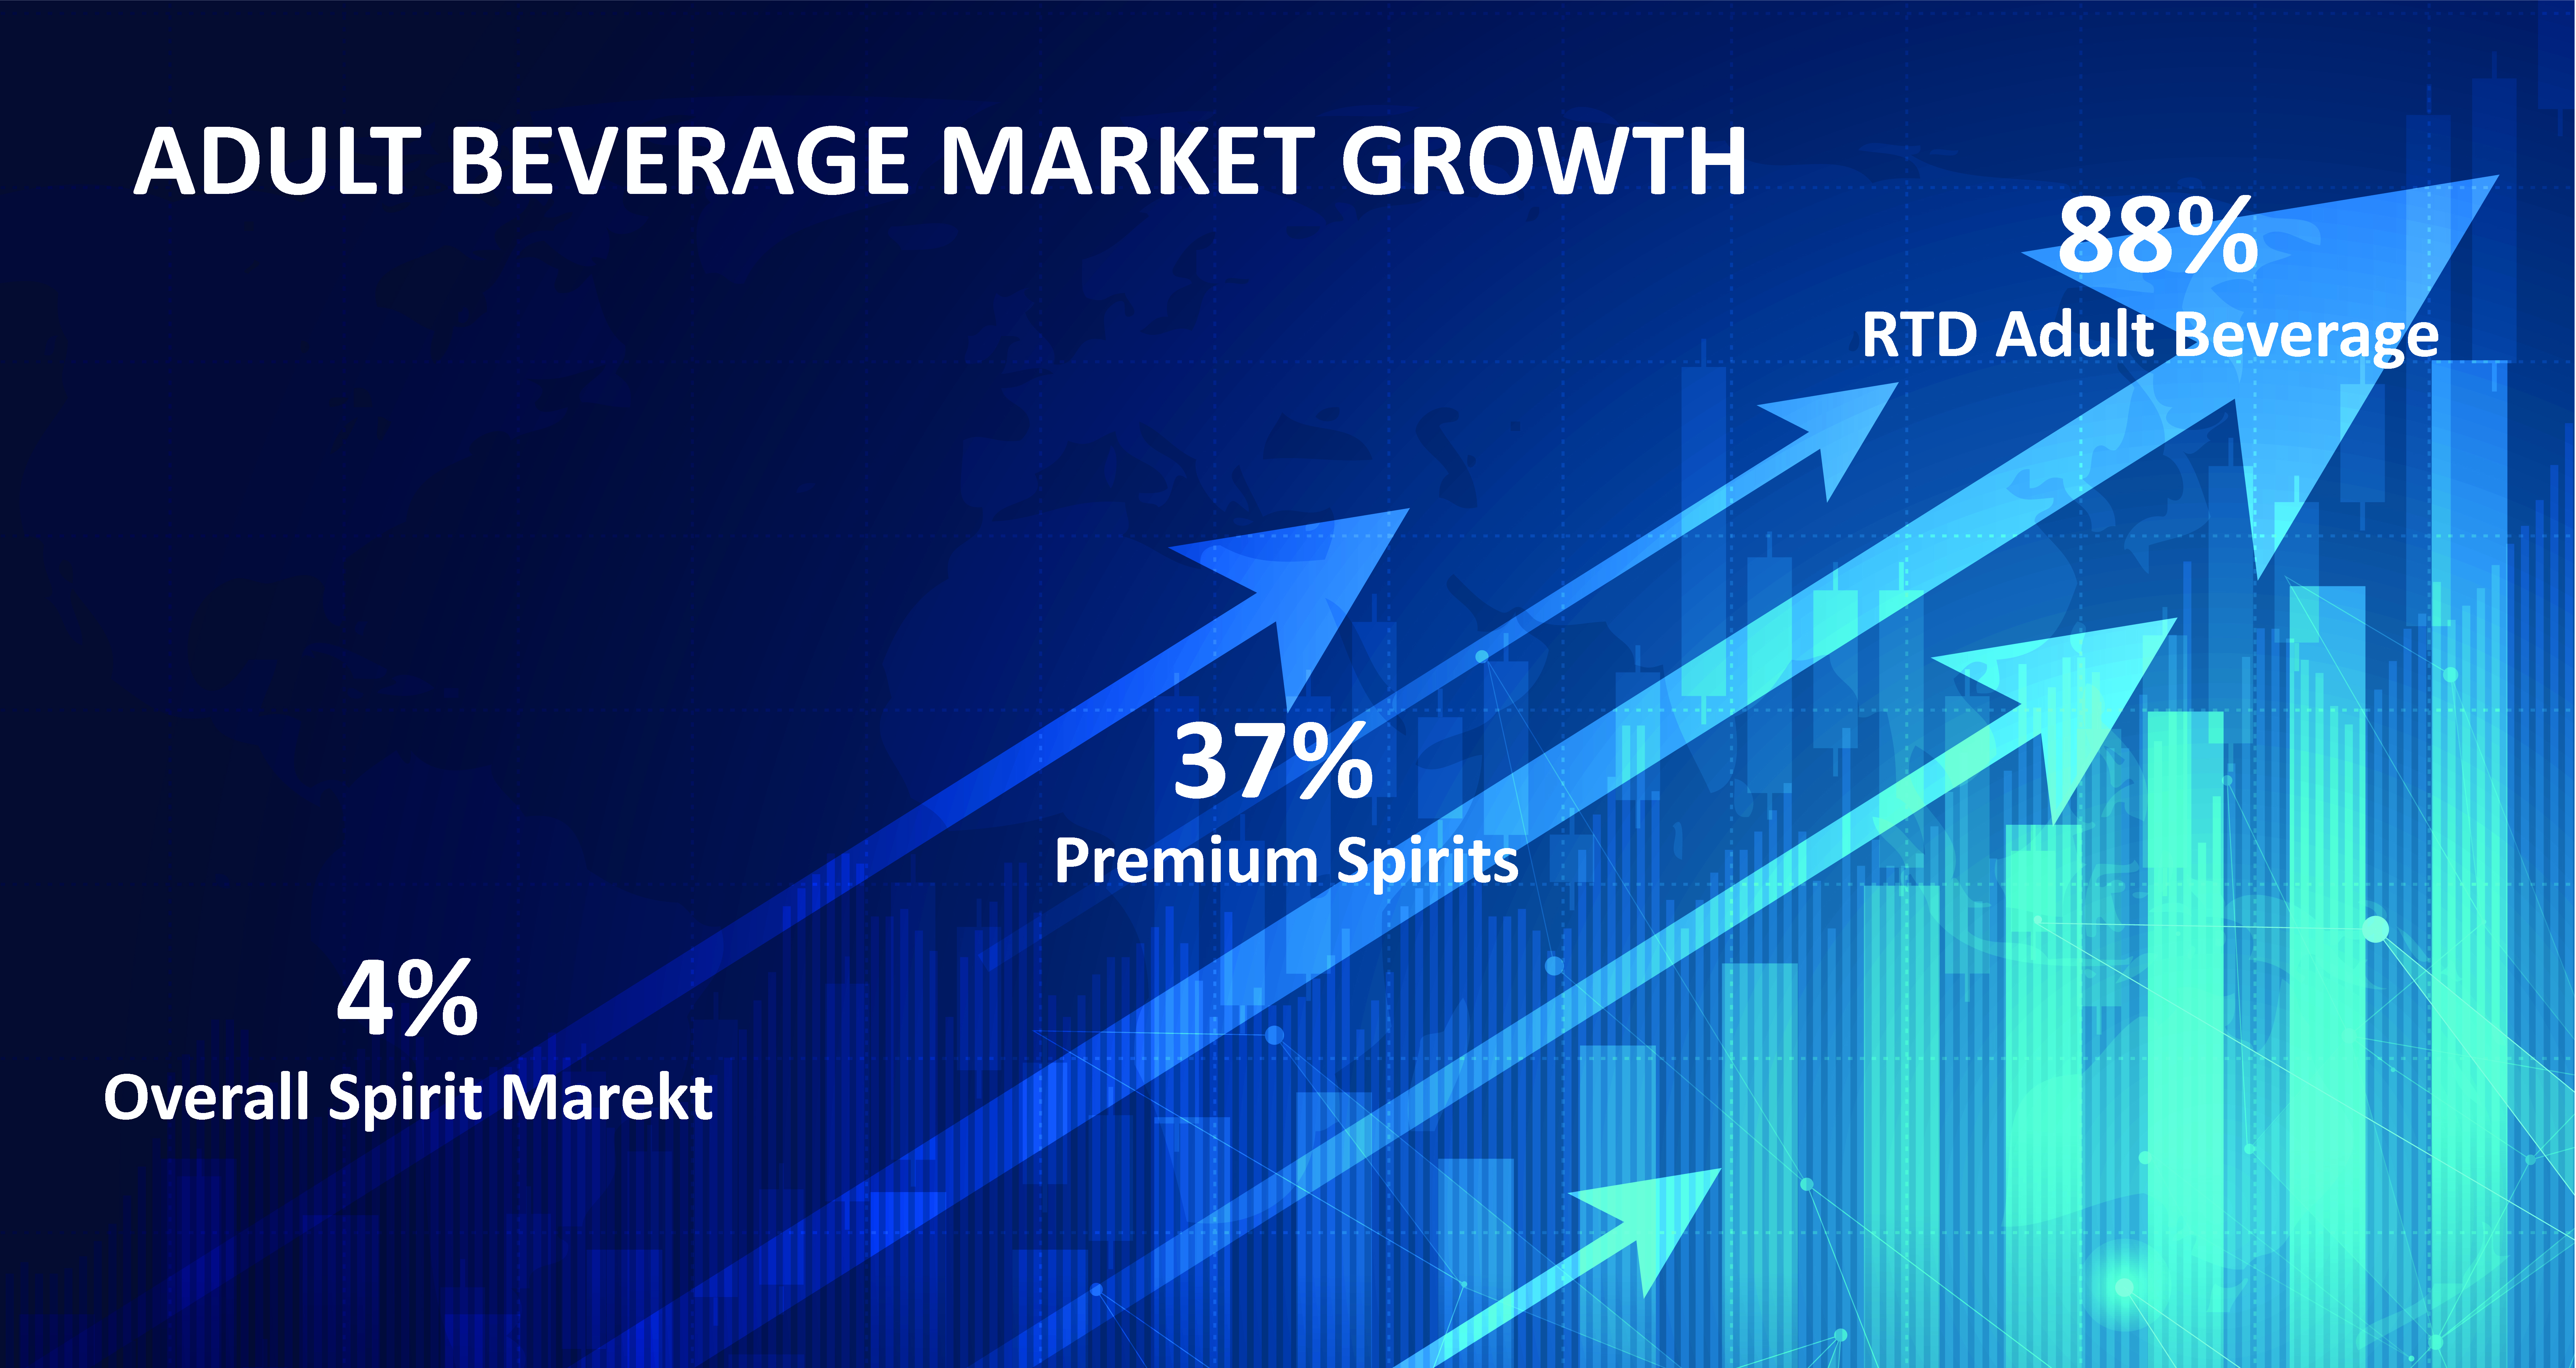 image of a graph in blue bars and arrows about adult beverage market growth